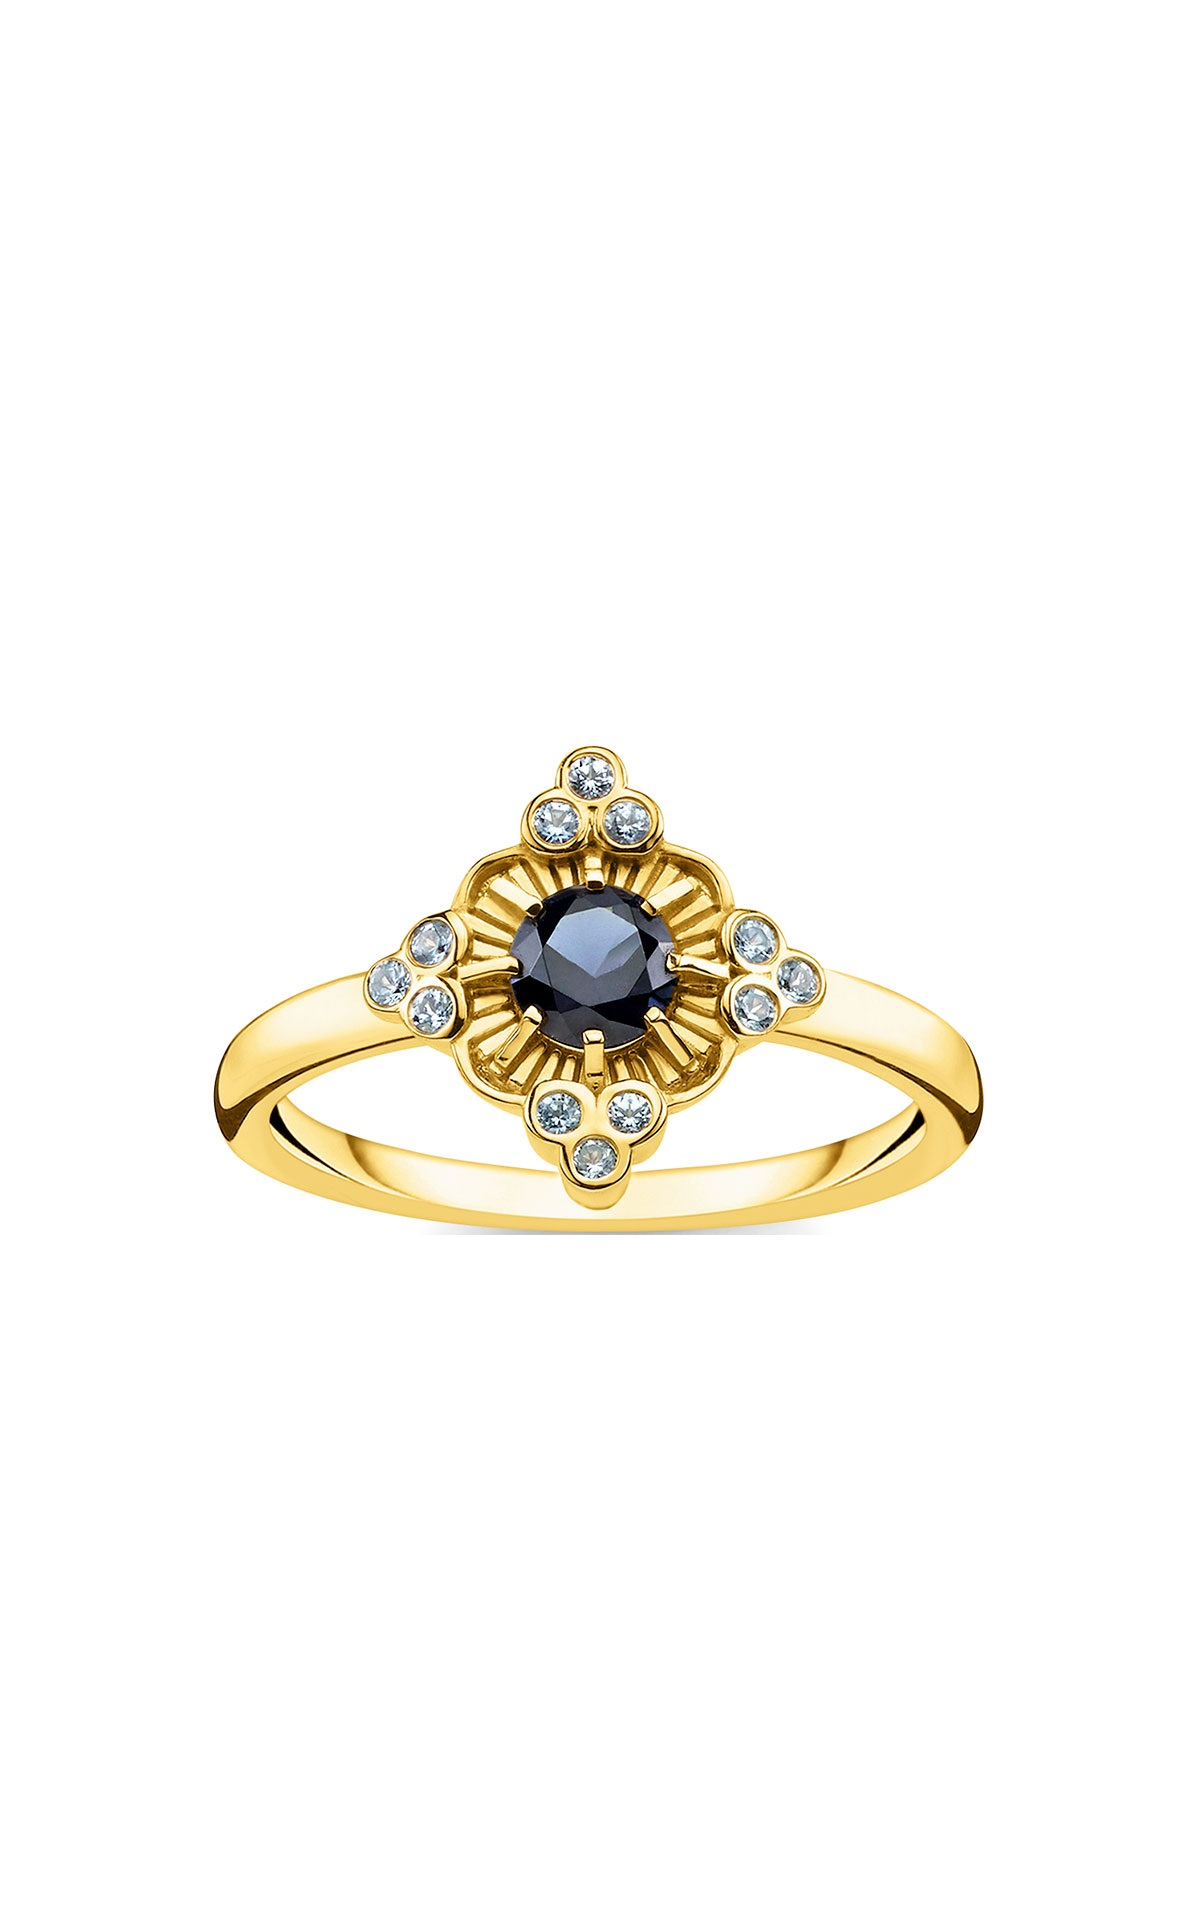 Gold ring with grey stonesThomas Sabo